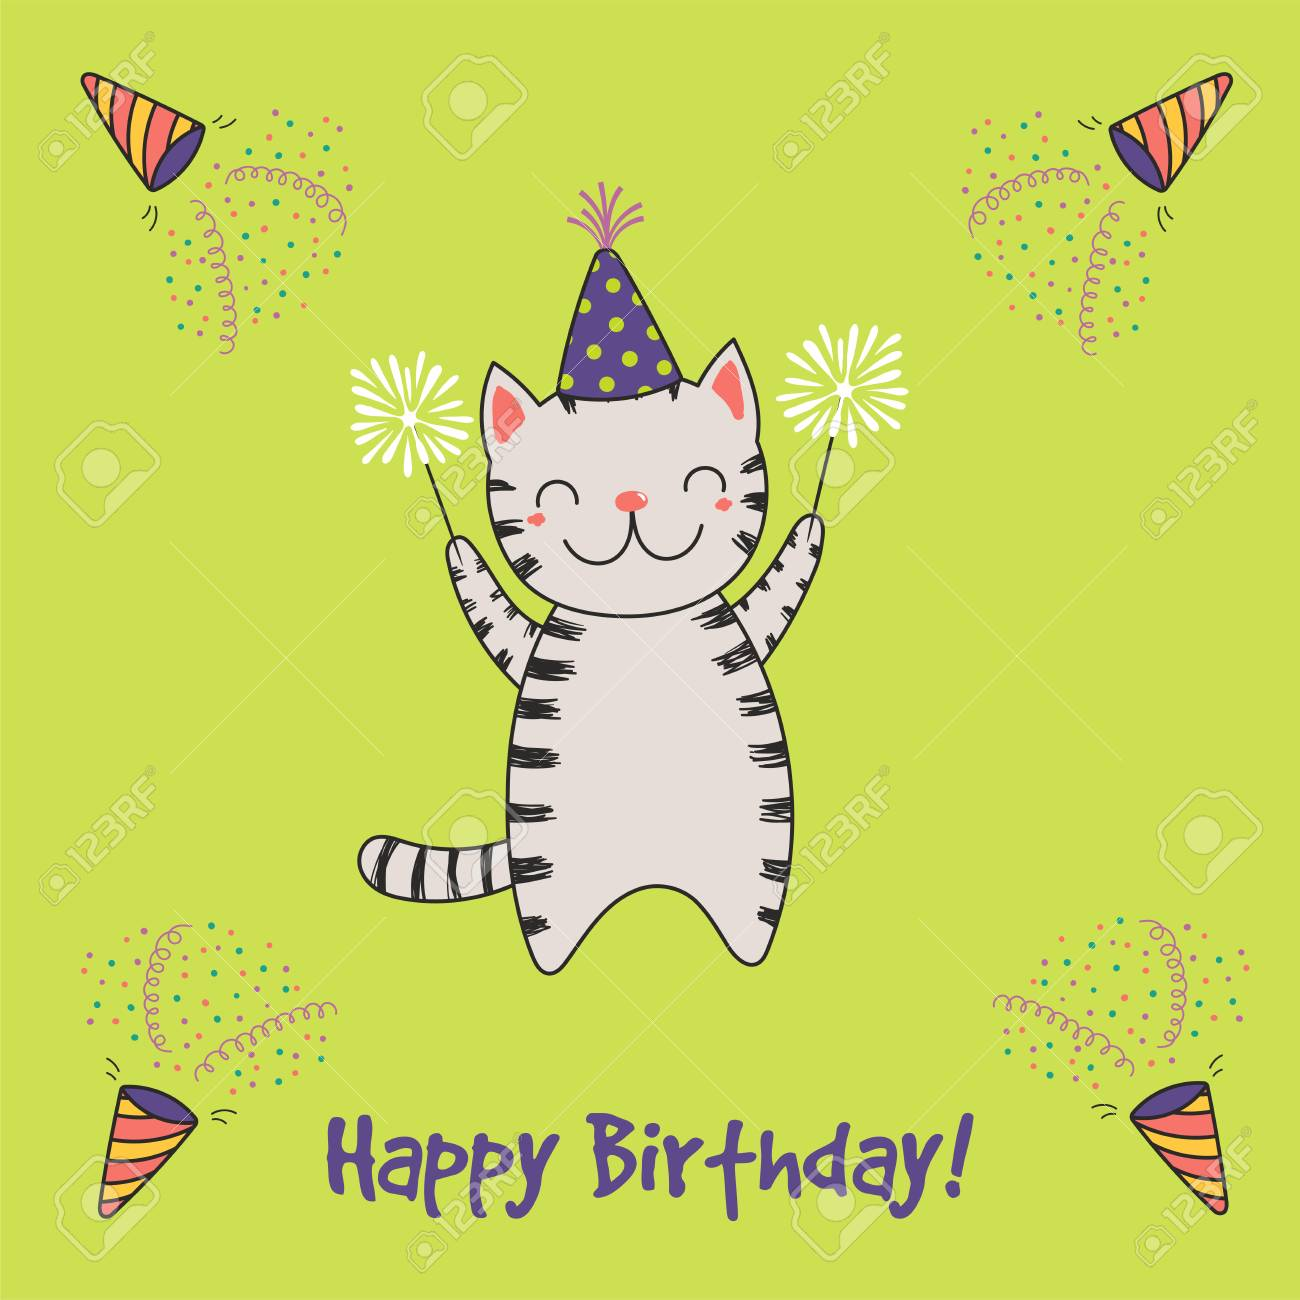 Hand Drawn Happy Birthday Greeting Card With Cute Funny Cartoon Cat Sparklers Text